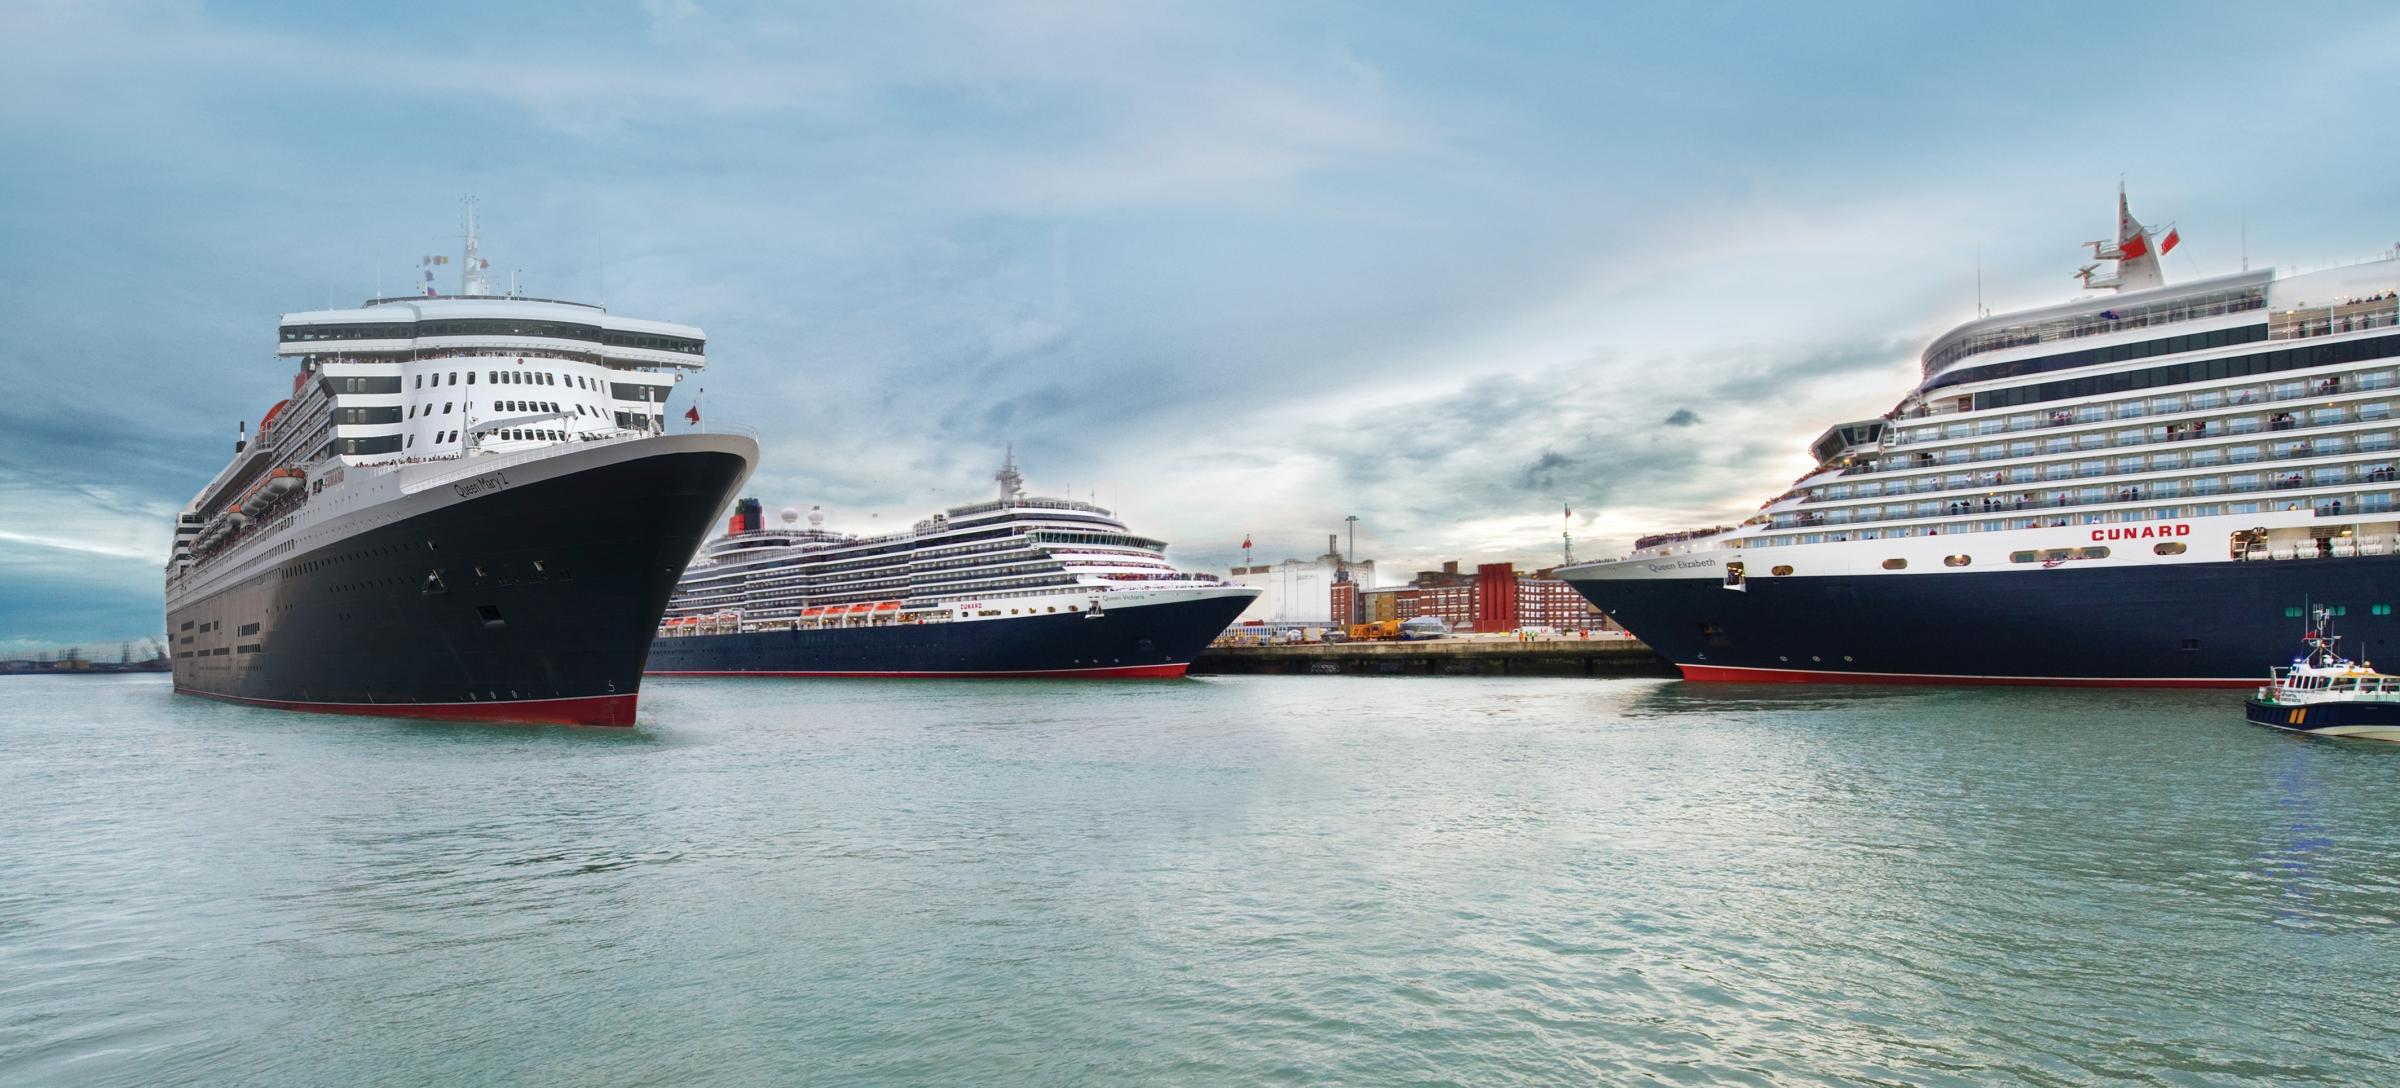 Cunard's Three Queens to arrive in Southampton this weekend